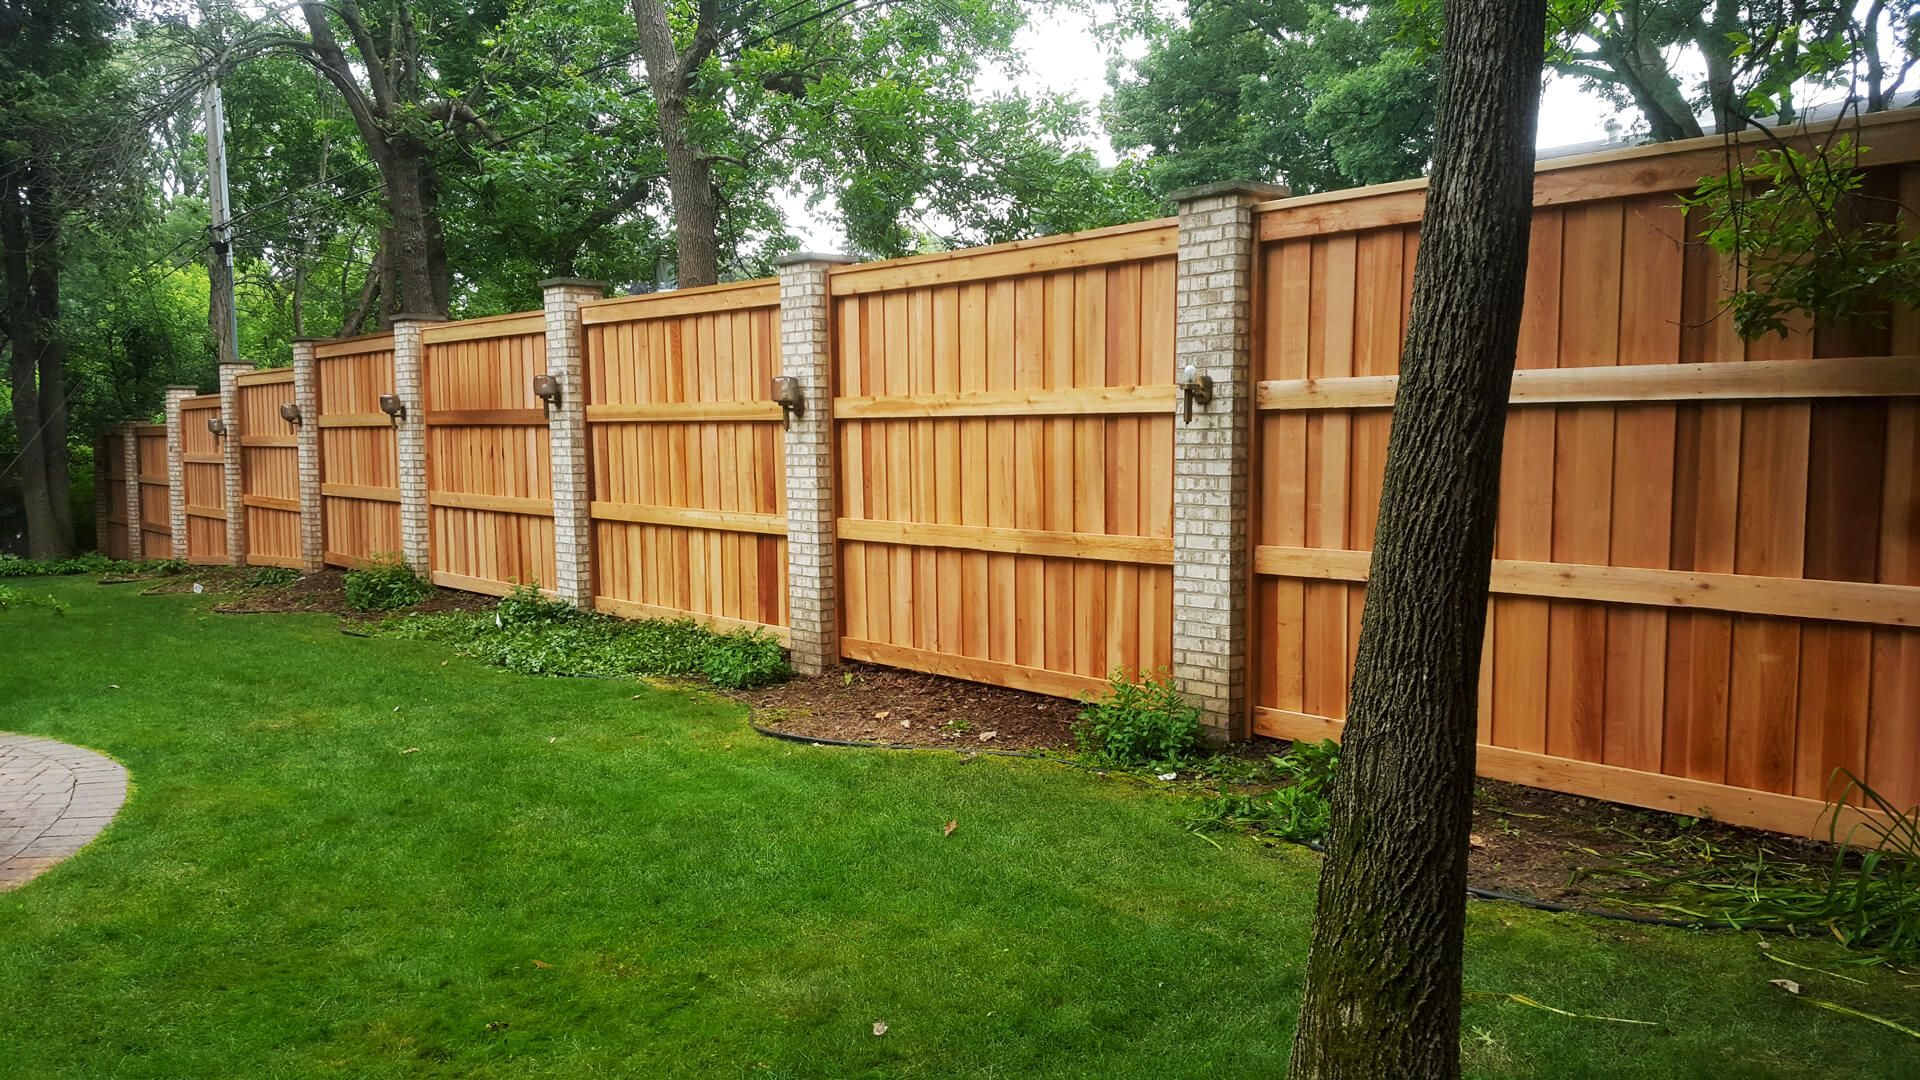 How To Build A Wood Fence On Uneven Ground Wood Fence Design Wood Fence Privacy Fence Panels